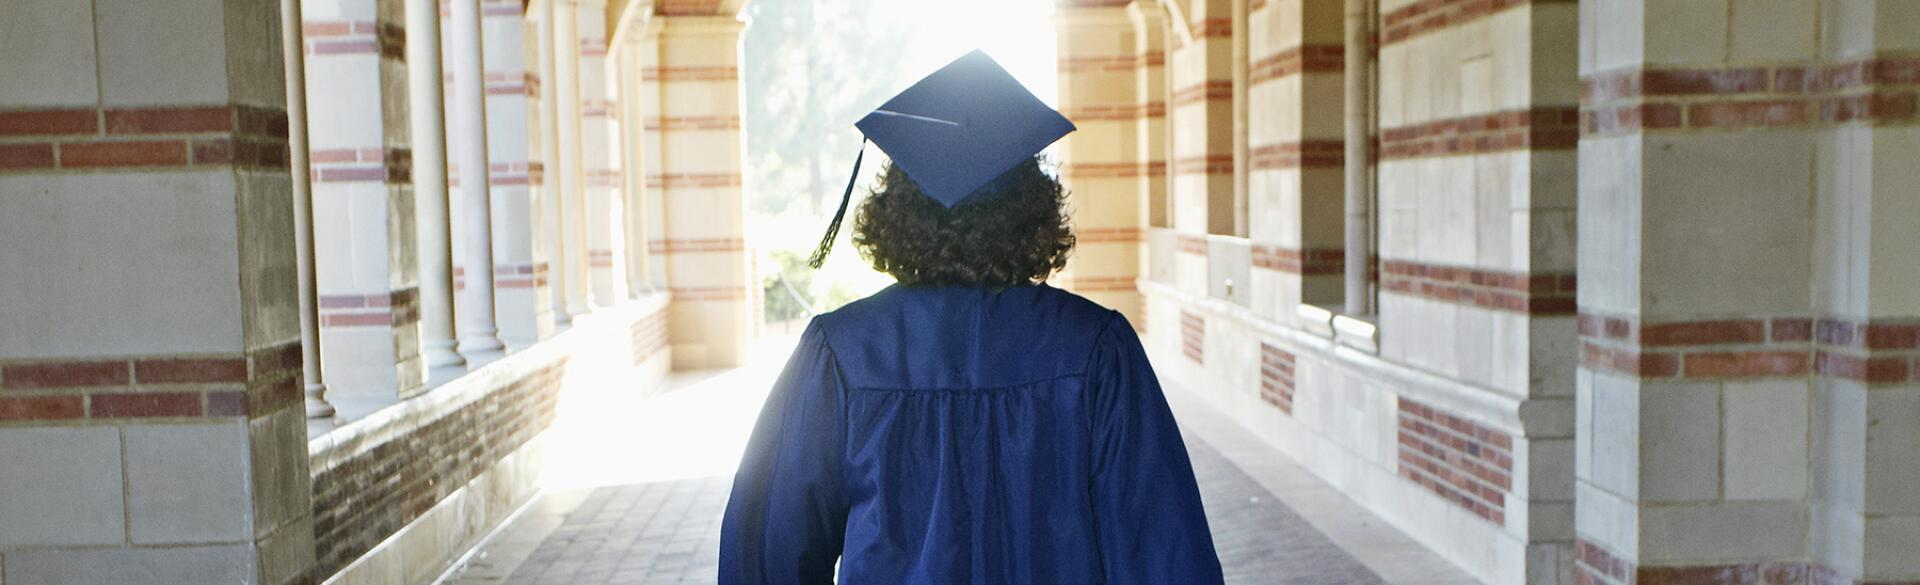 image_of_woman_in_graduate_robe_walking_from_behind_GettyImages-162749395_1800